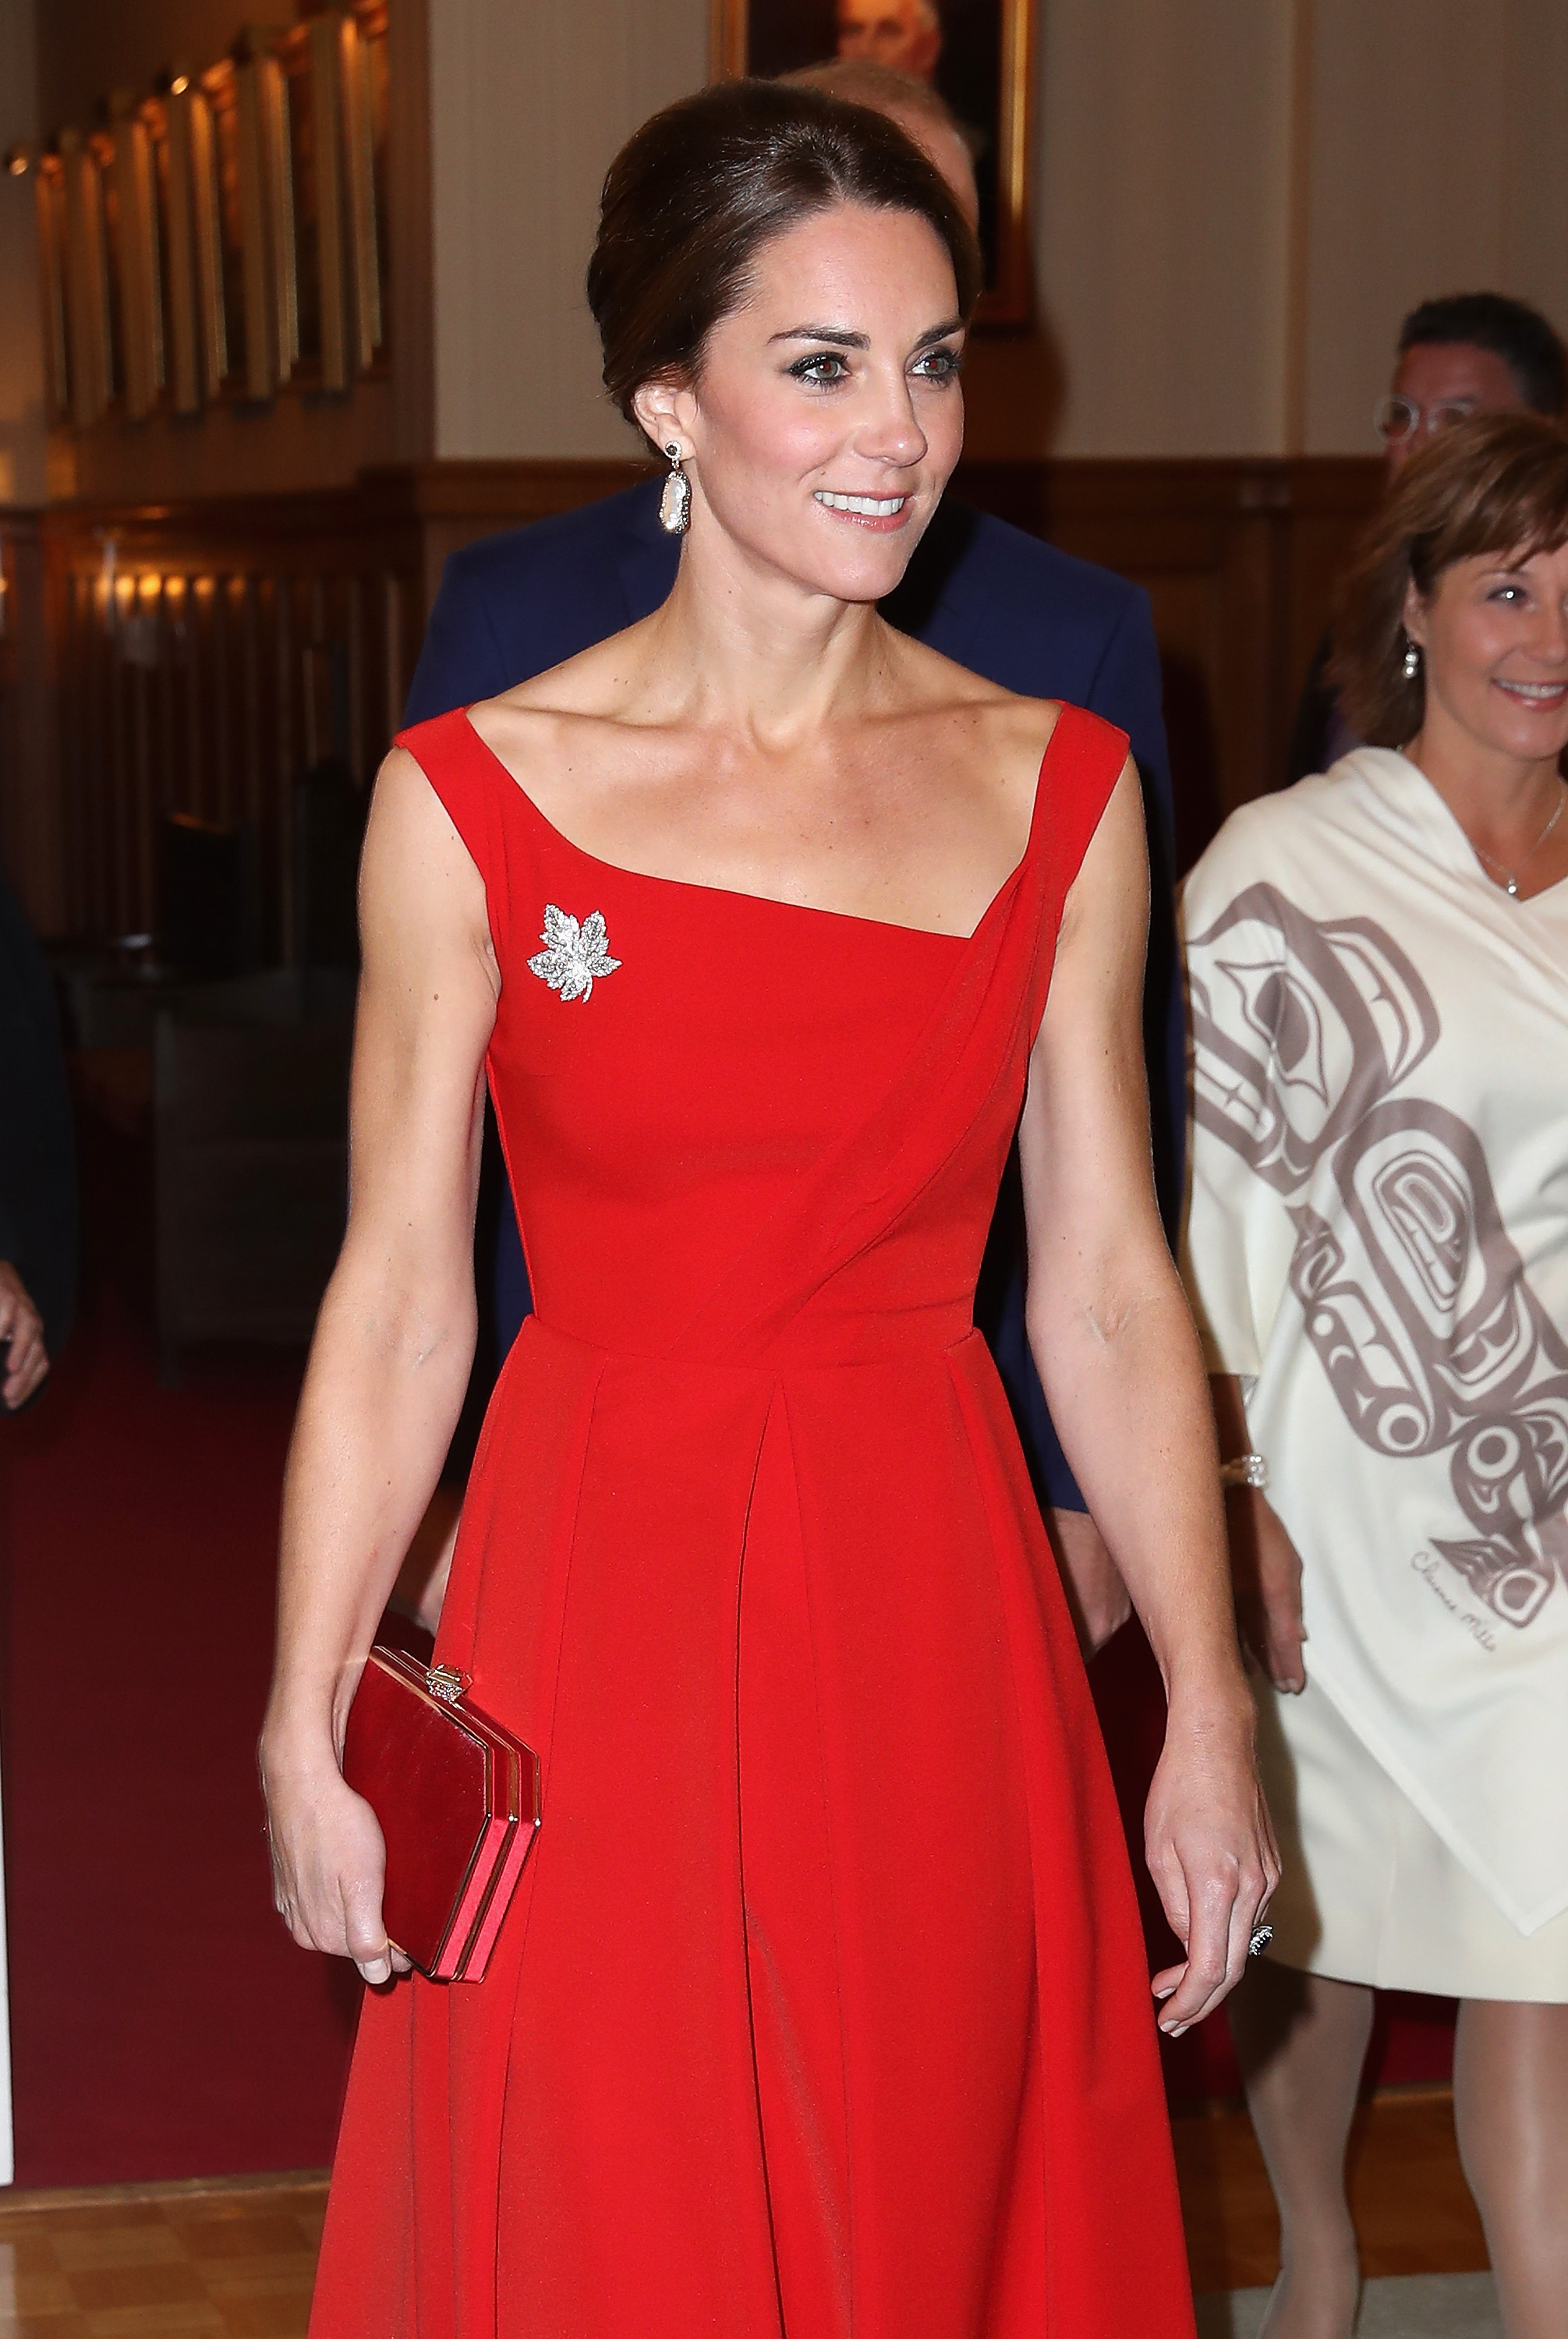 Catherine Middleton in a red dress